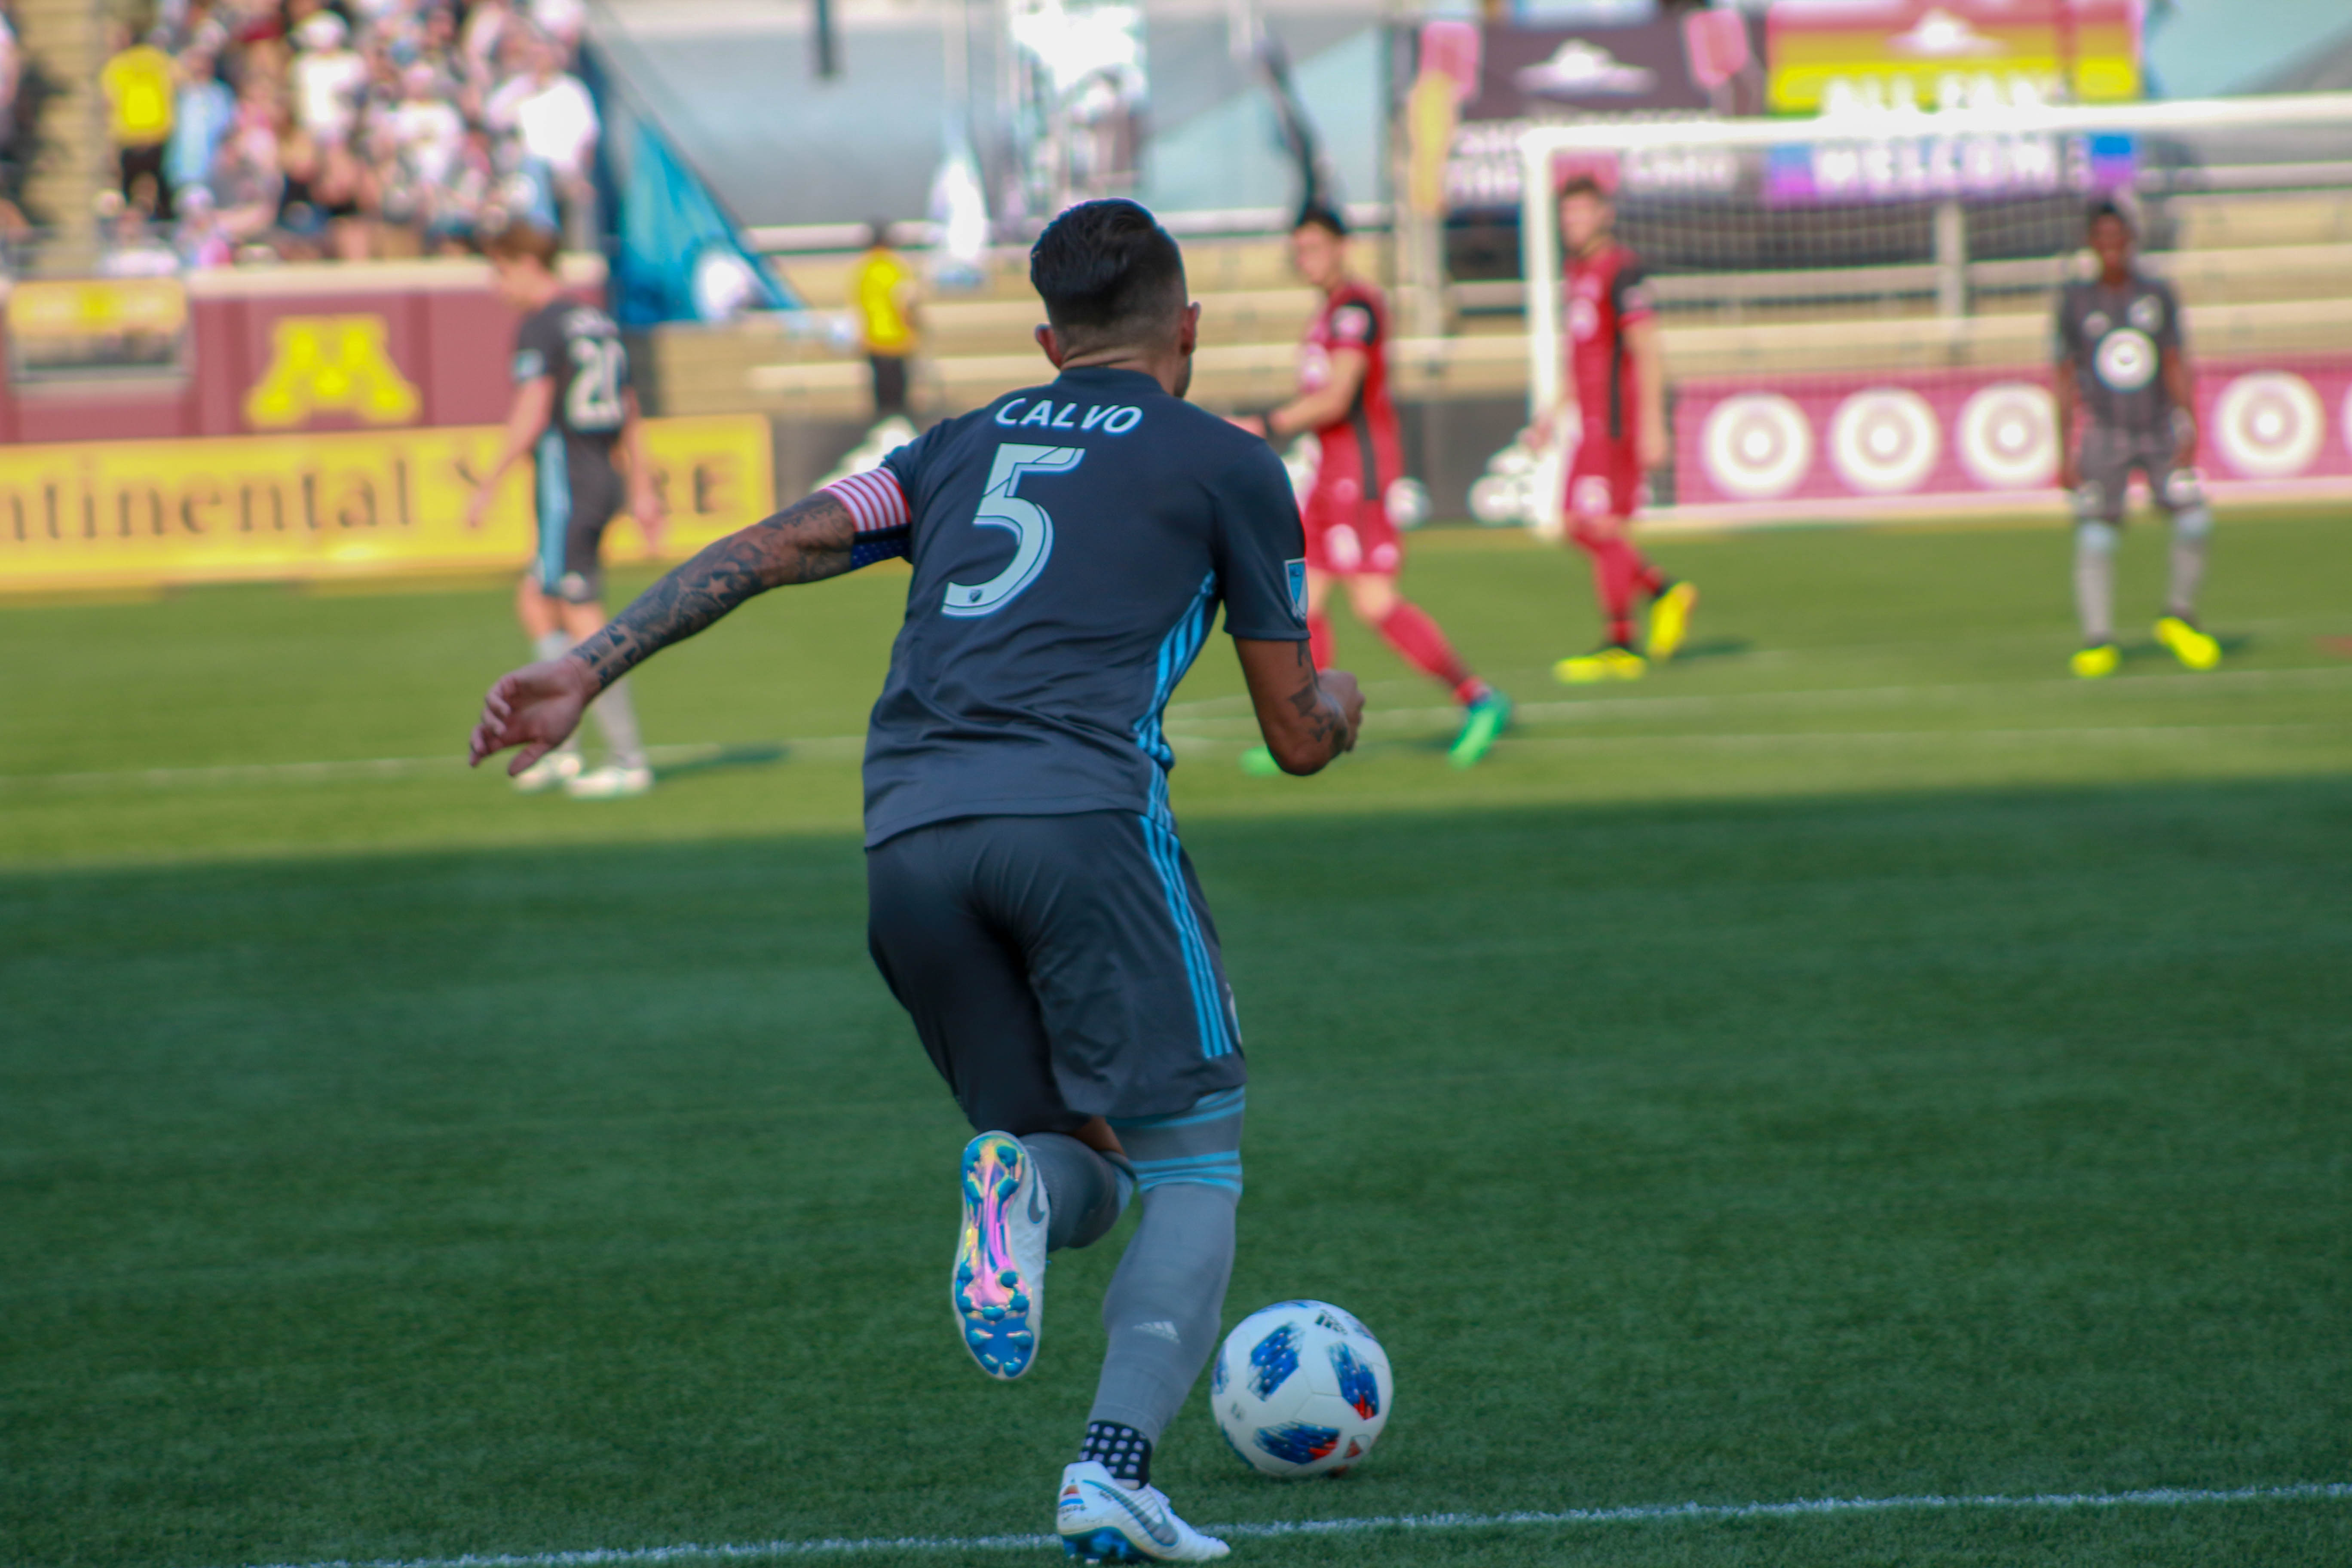 Photo Essay Mnufc Vs Toronto Fc  Fiftyfiveone  Makes His First Appearance For The Loons Sice Competing For The Costa  Rican National Team At The  Mens World Cup This Was Calvos First Game  For  Thesis Statement For A Persuasive Essay also Economics Writing Service  Essay On Health Care